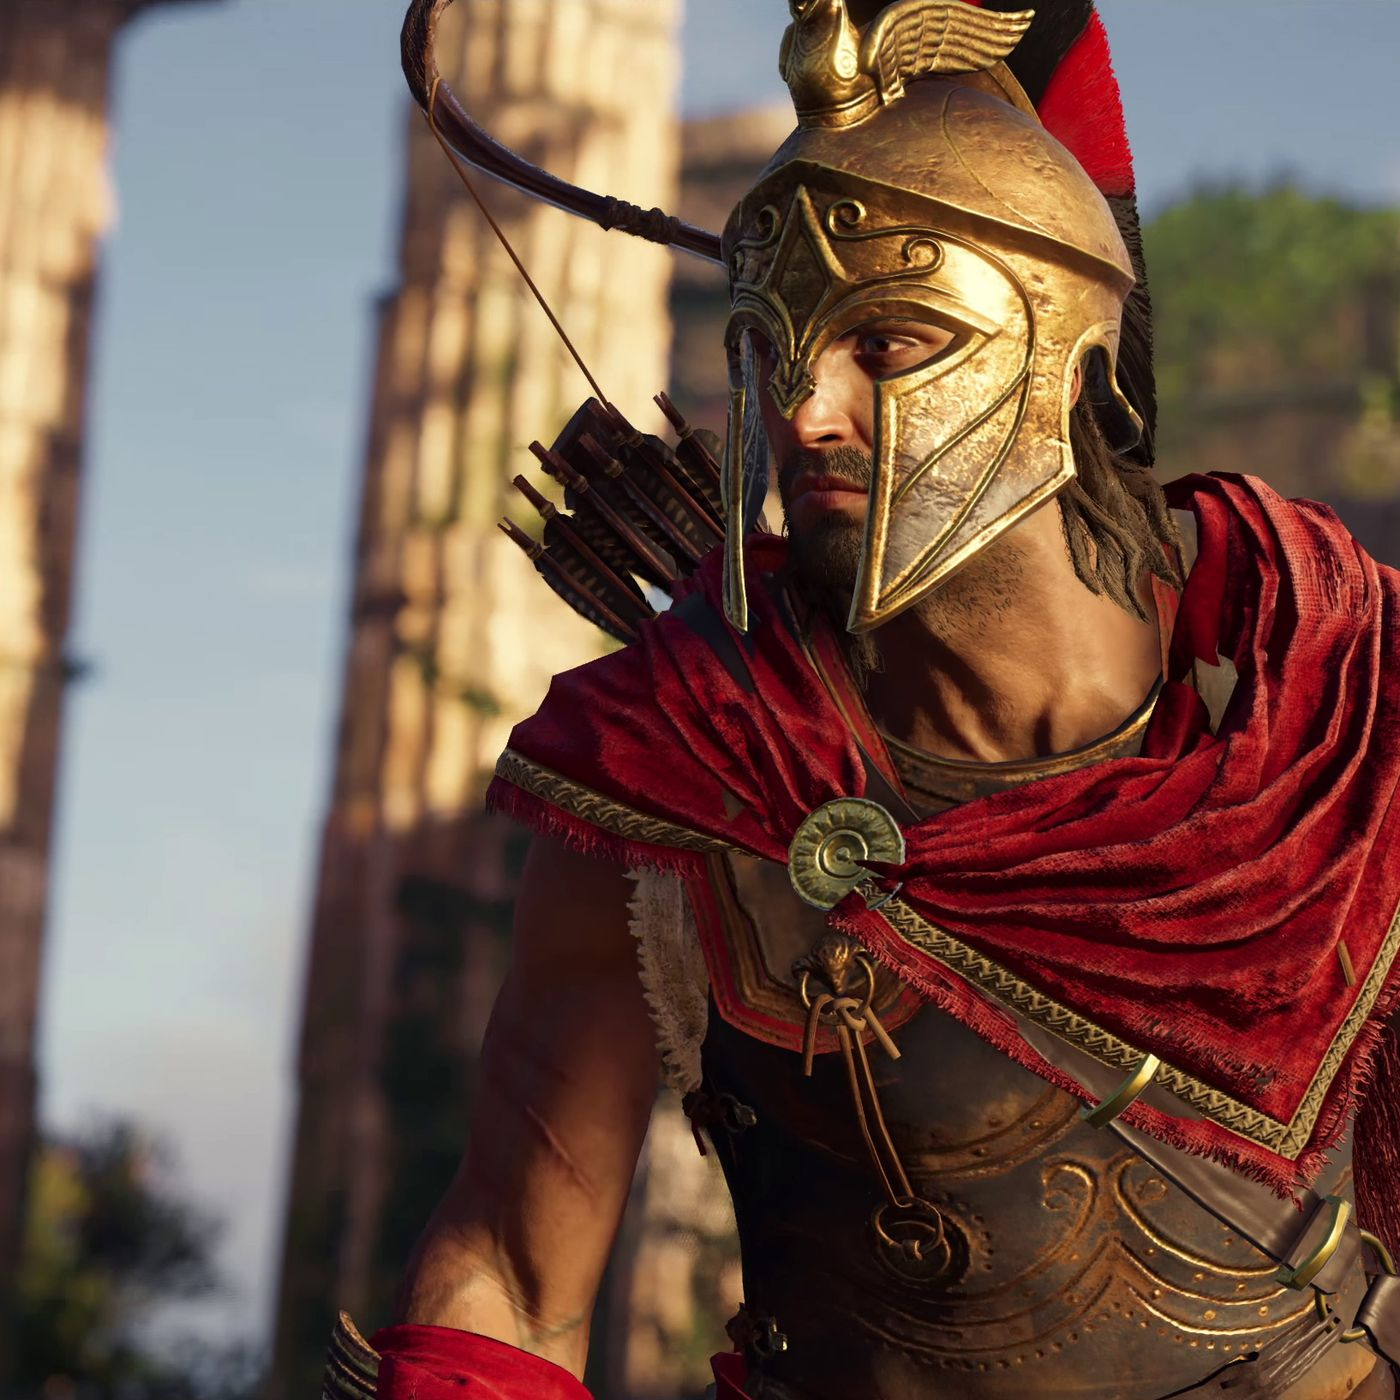 Assassin S Creed Odyssey Has A Huge Grinding Microtransaction